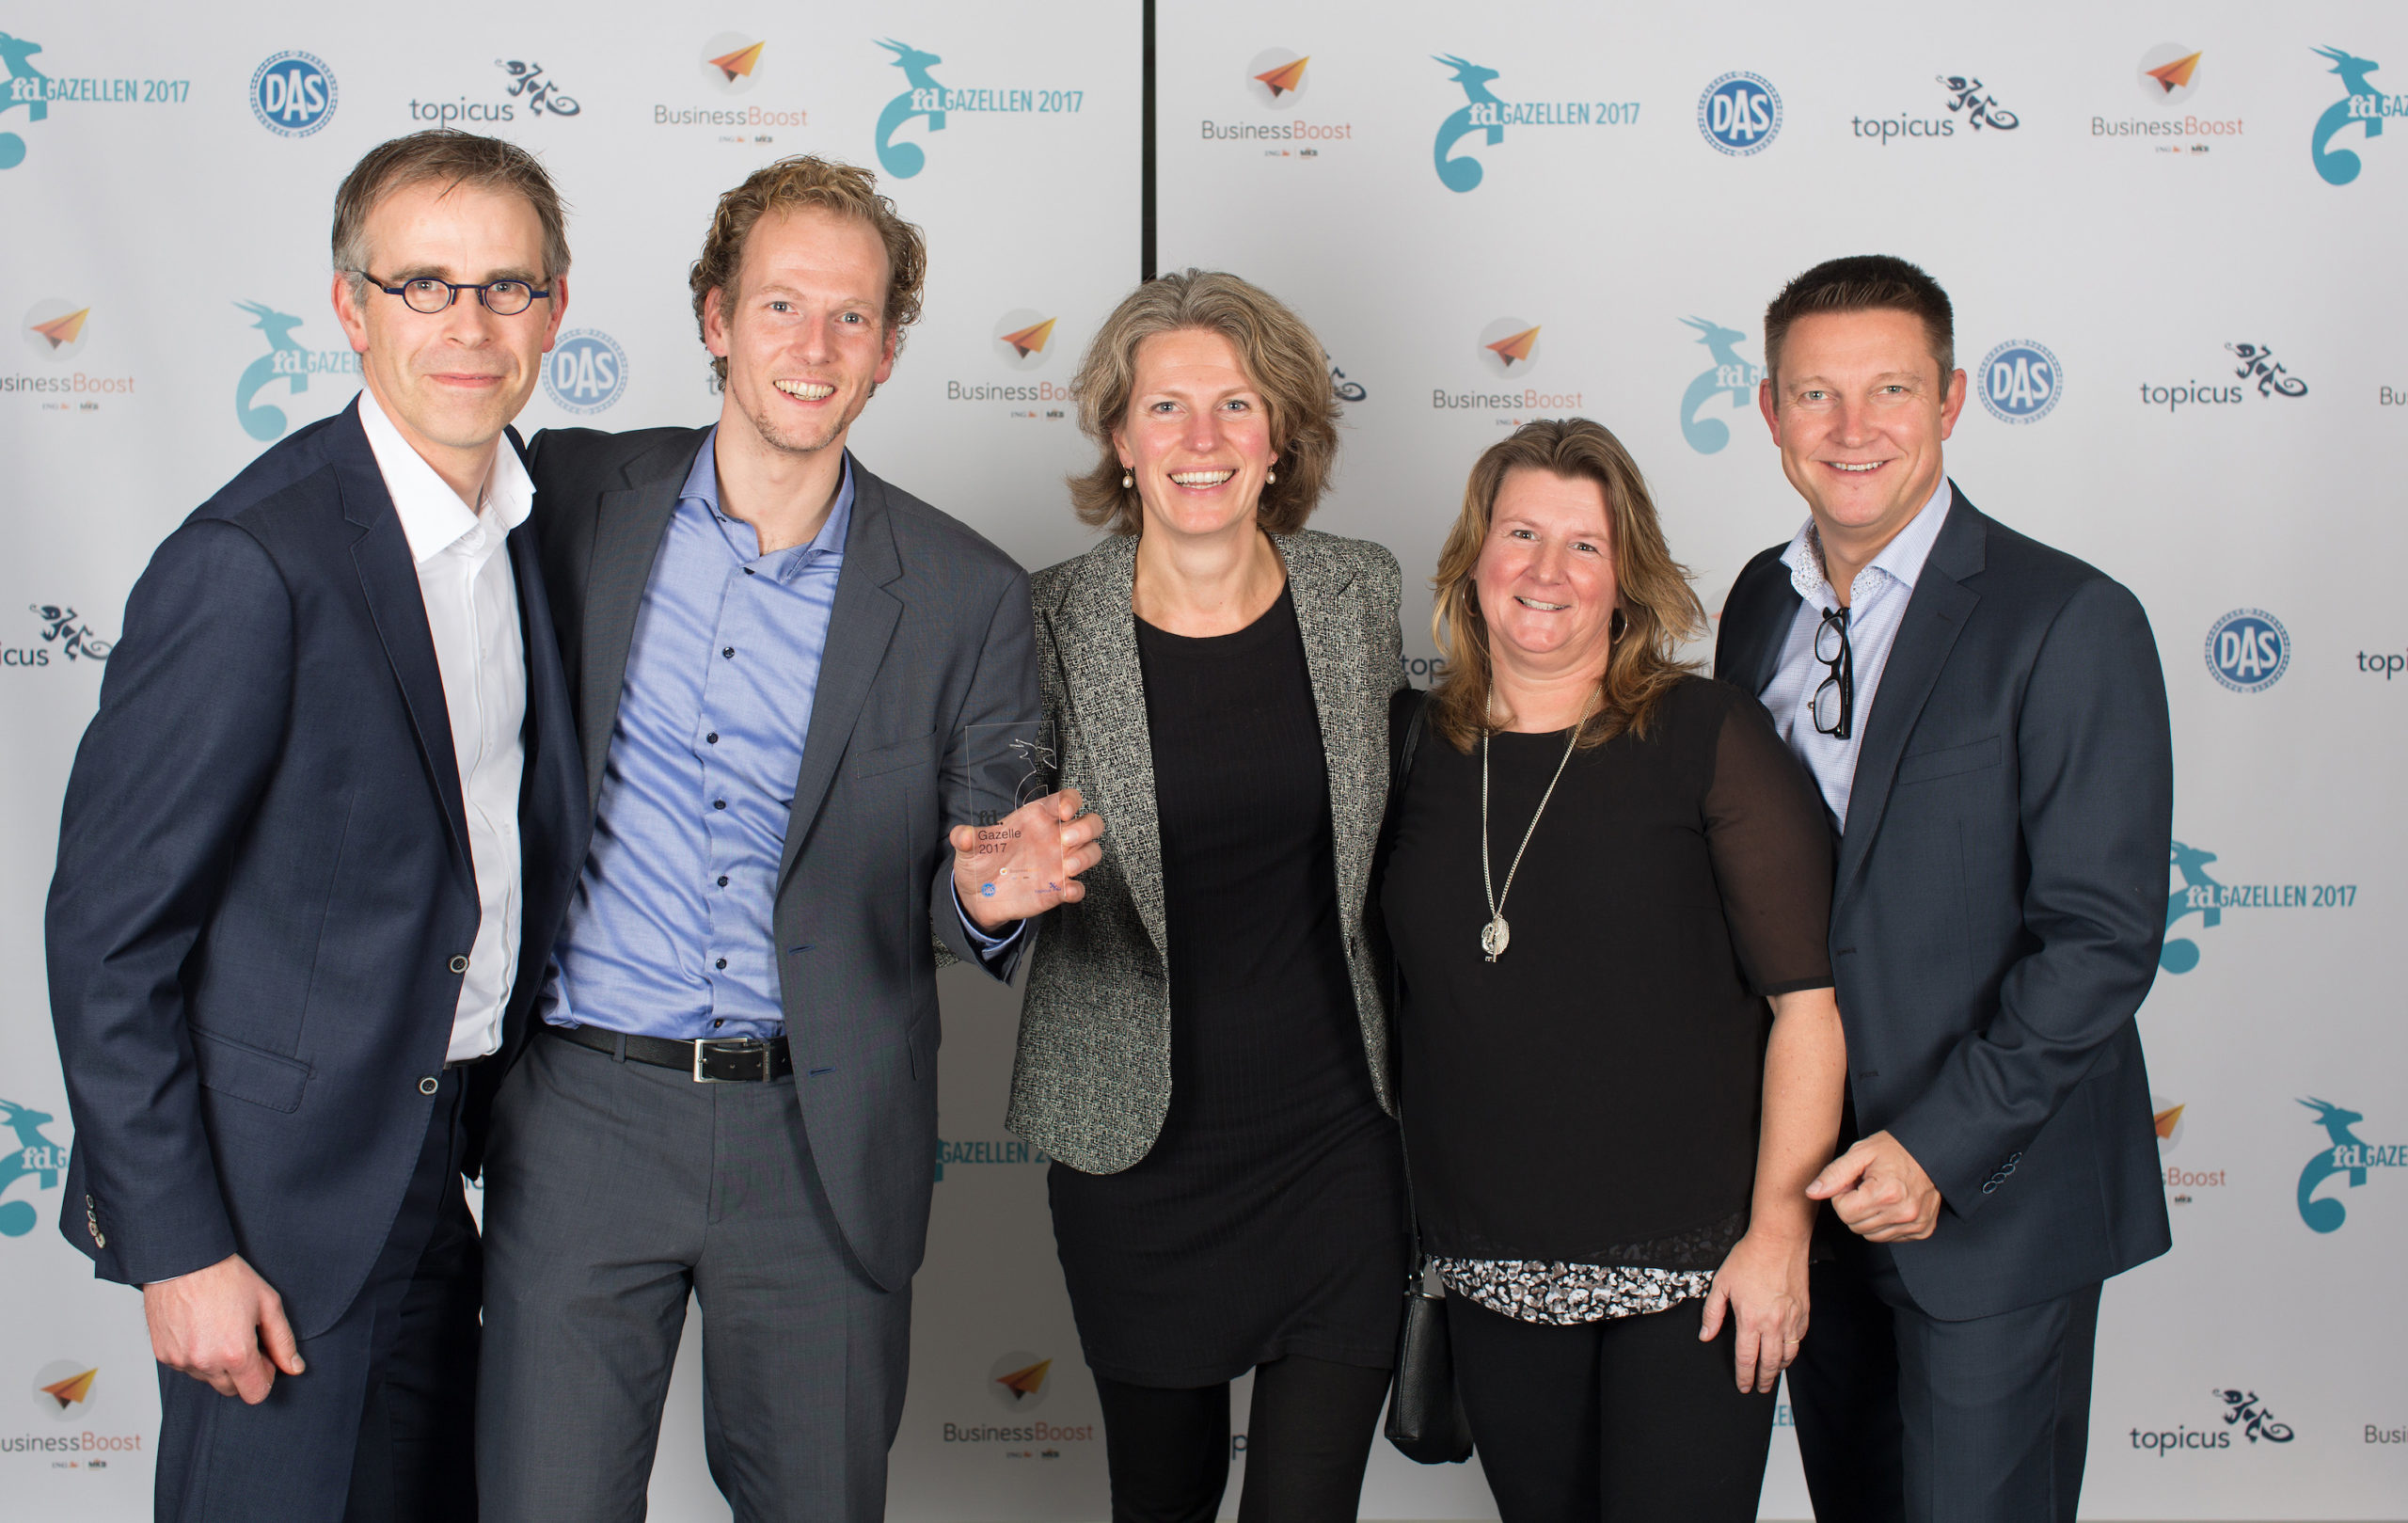 FD Gazellen Awards 2017 Lean Six Sigma Groep